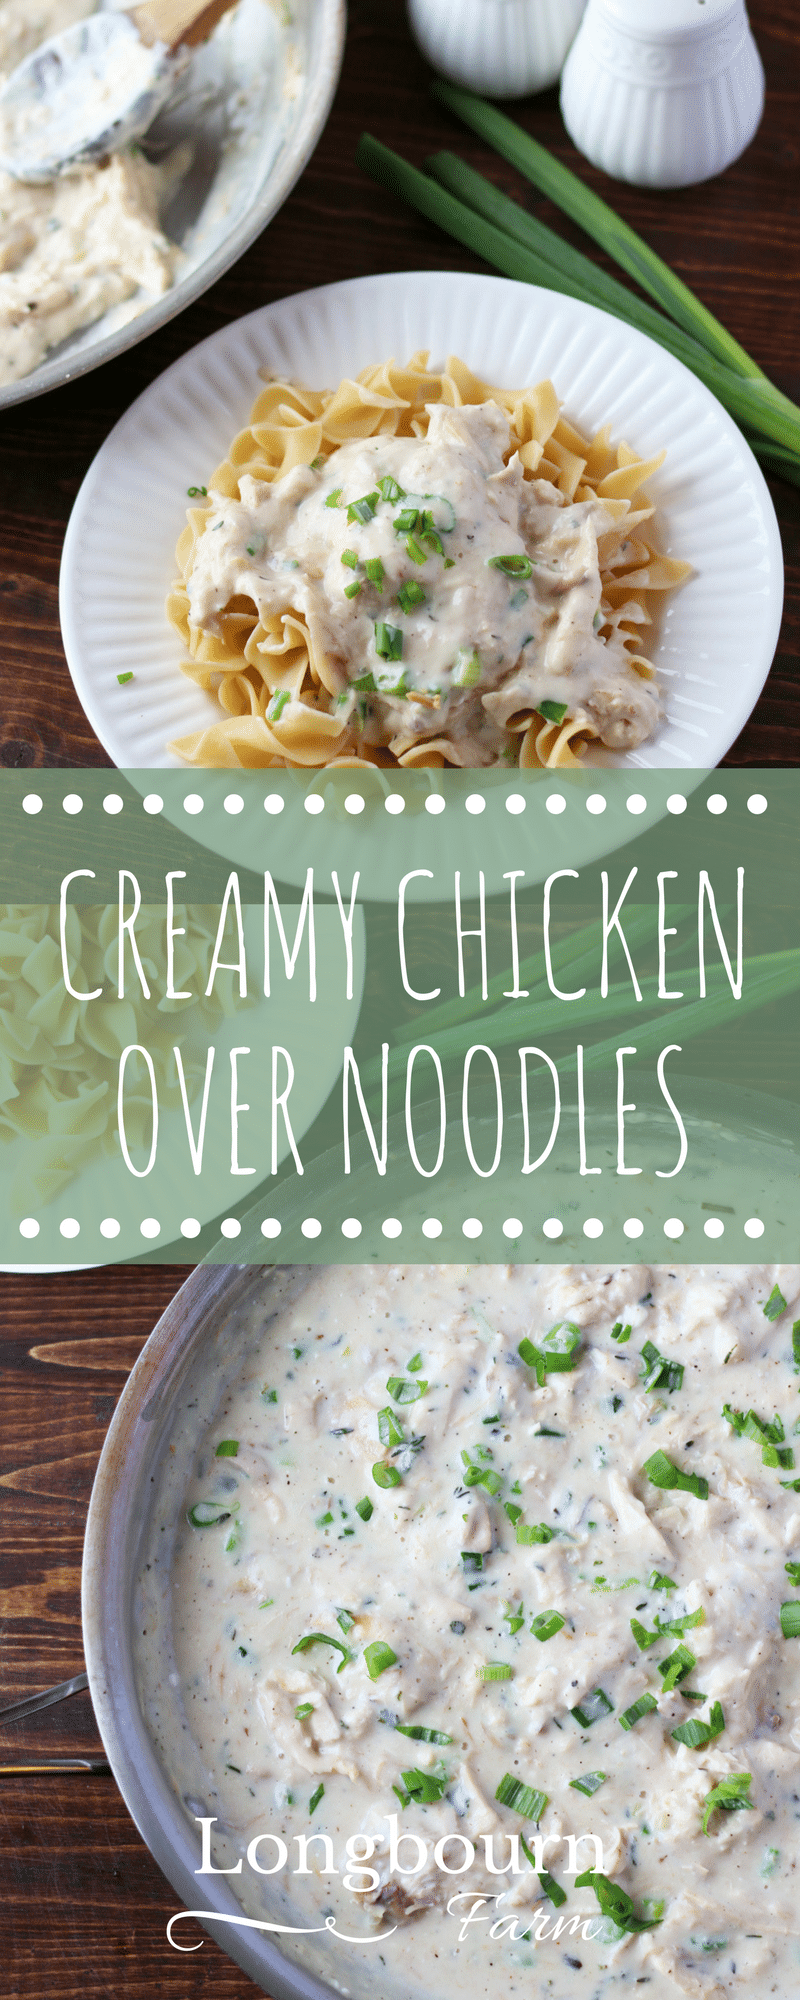 Creamy chicken over noodles is a flavorful, fast dinner that is made from scratch. Similar to chicken ala king, this version will please the whole family!